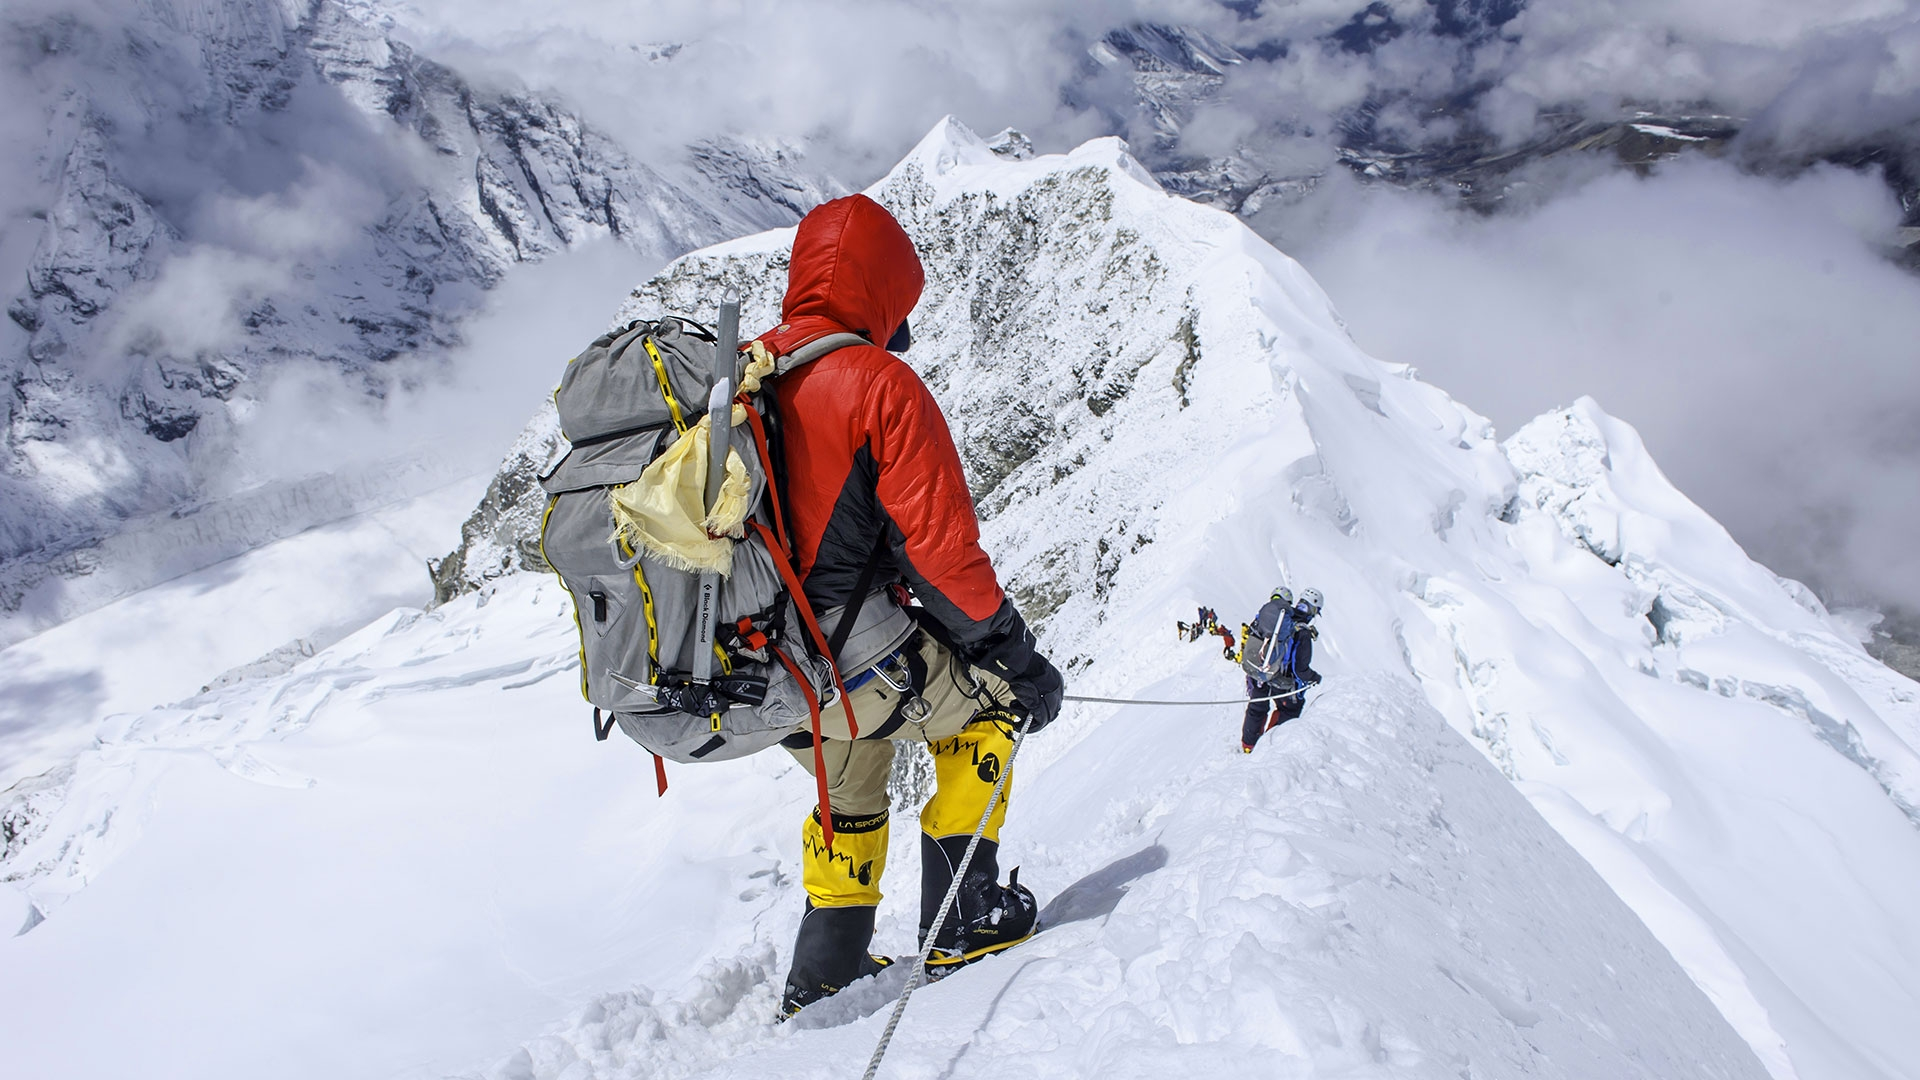 mountain climbing expeditions challenged - HD1920×1080